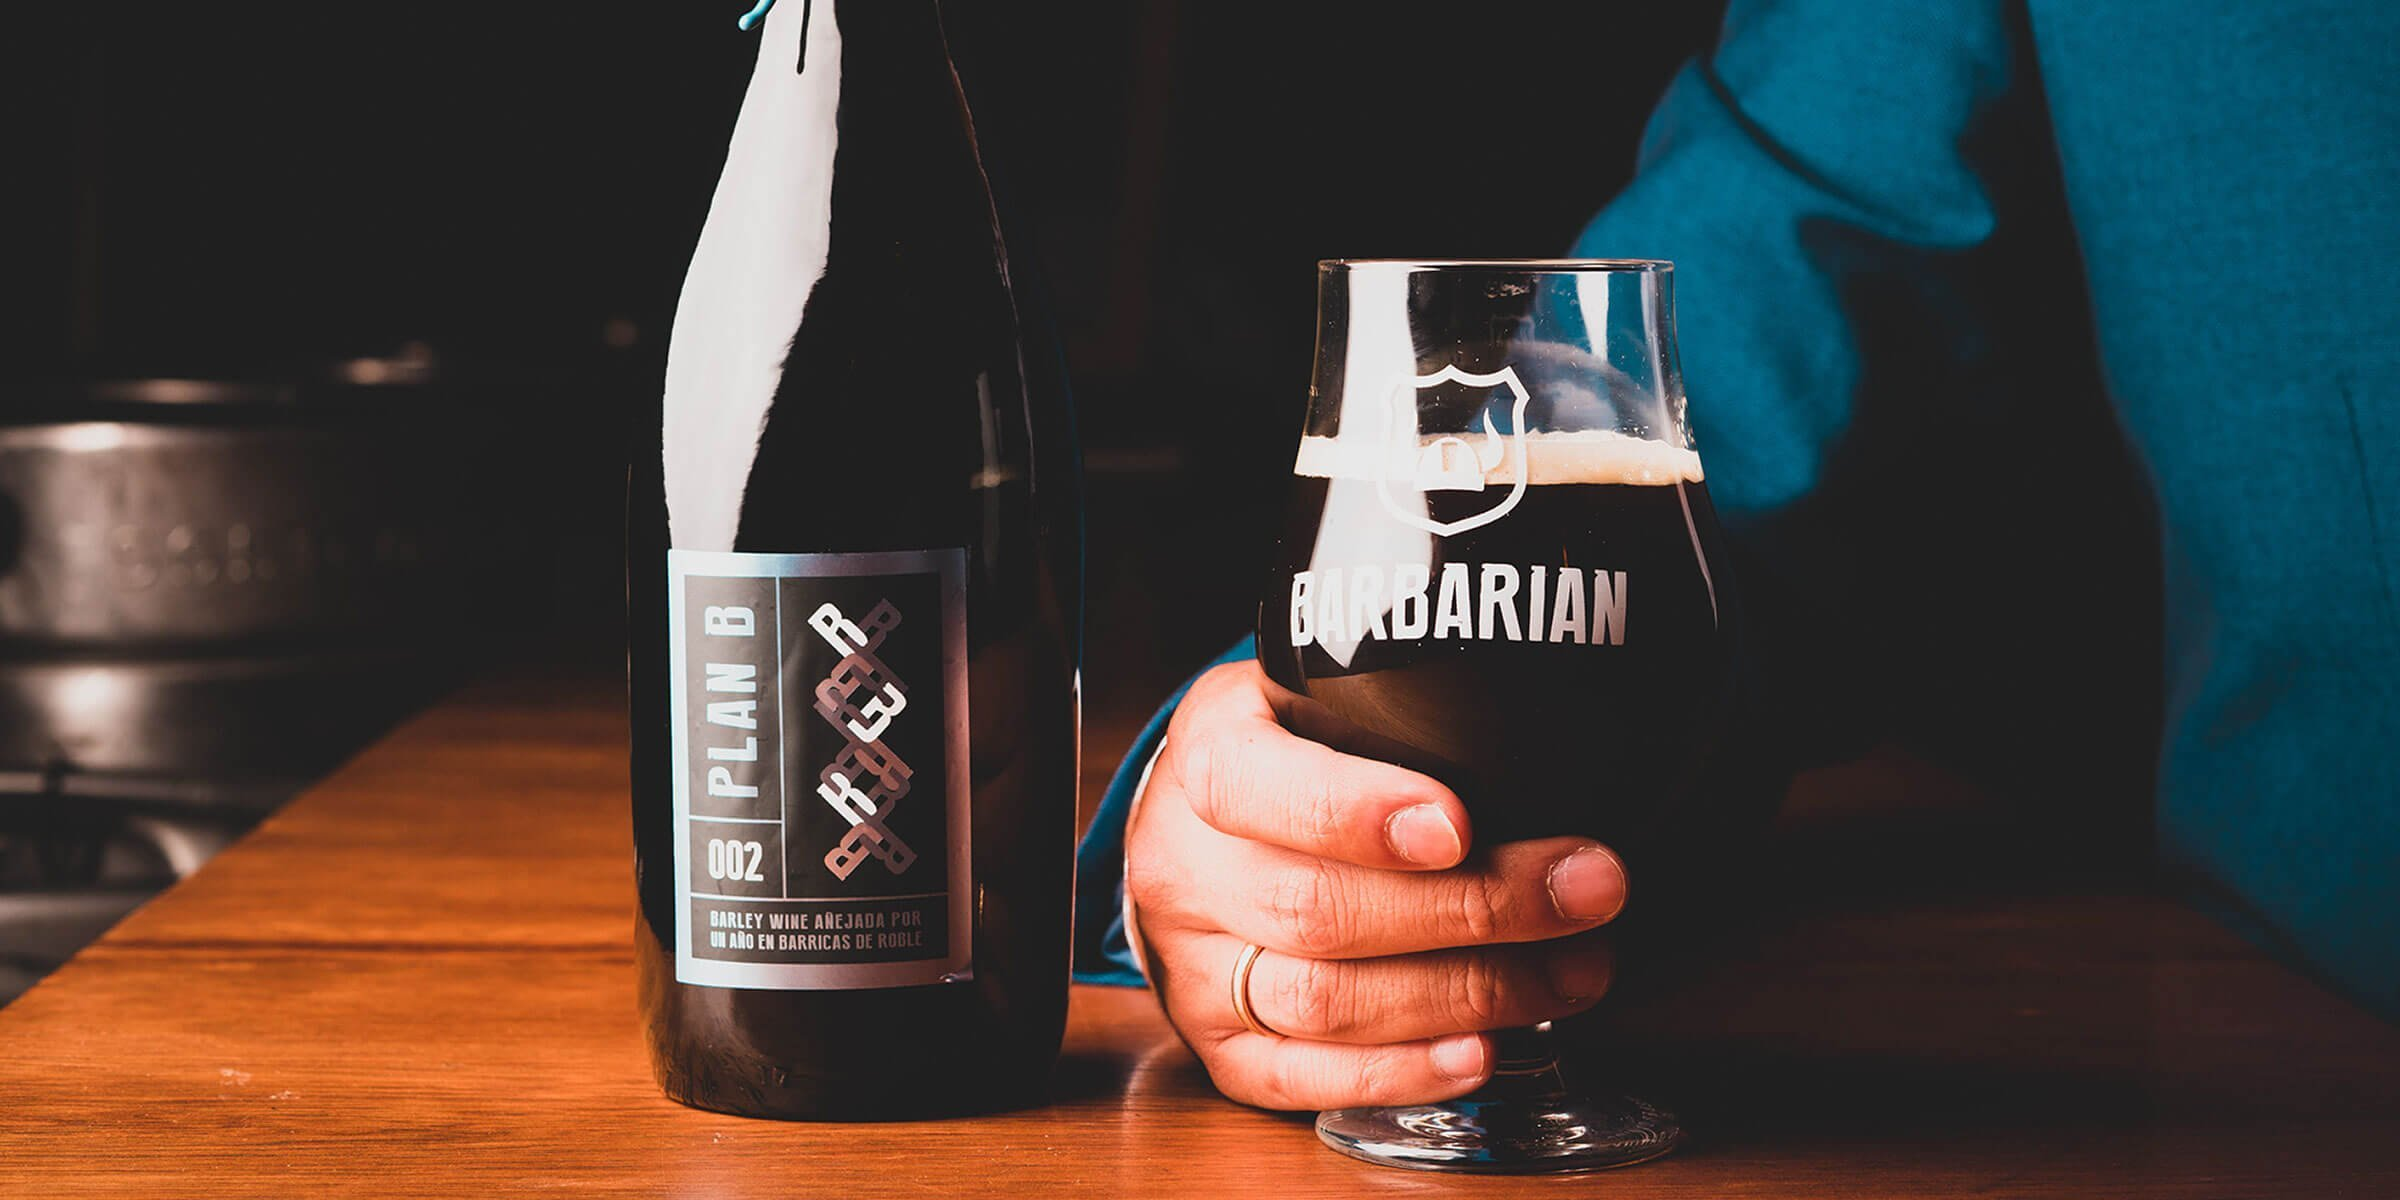 Anheuser-Busch InBev's growth and innovation group, ZX Ventures, has acquired 100% of the Peruvian craft brewery Barbarian.